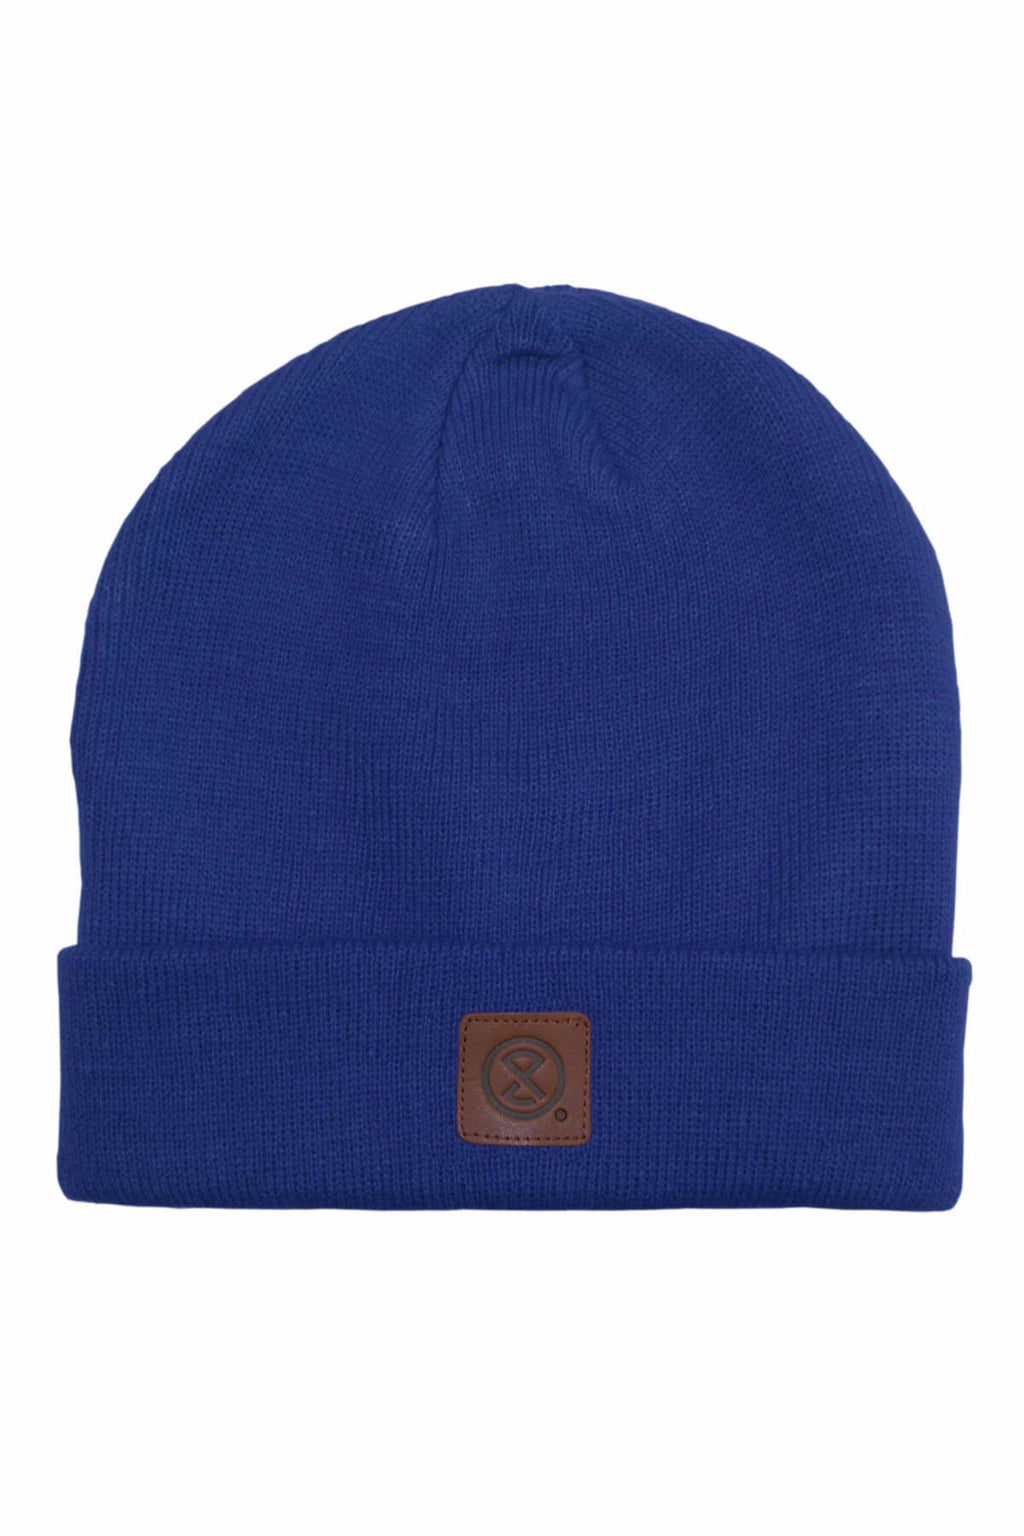 PATCH, beanie blue - QHUIT Streetwear